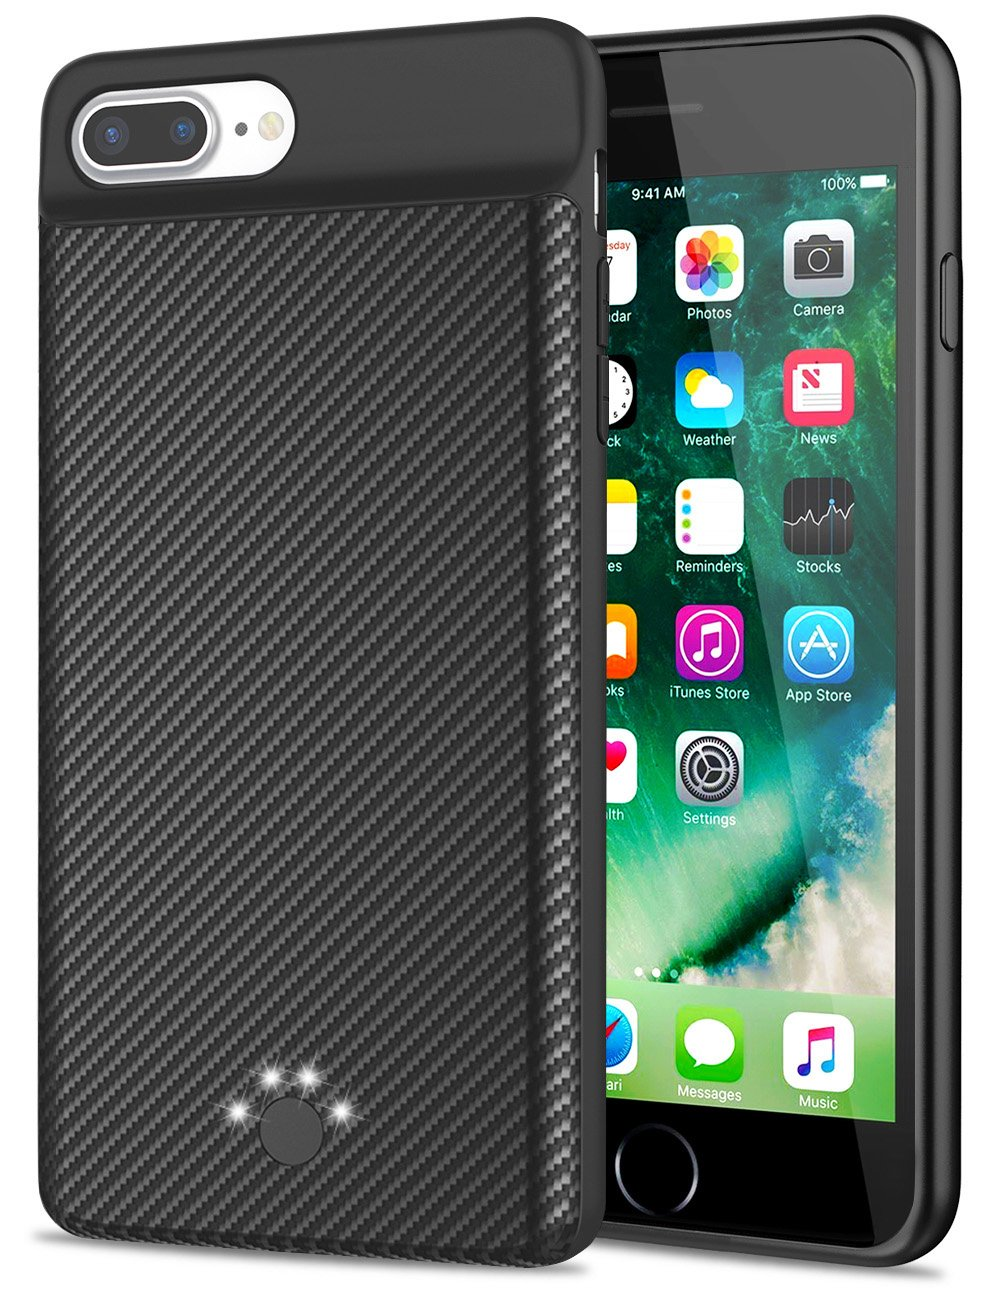 Emishine [Upgraded] iPhone 7 Plus/8 Plus Battery Case, 4000 mAh Super Thin and Lightweight Rechargeable External Battery Portable Power Charger Case for iPhone 8 Plus/7 Plus/6 Plus/6S Plus(Black)